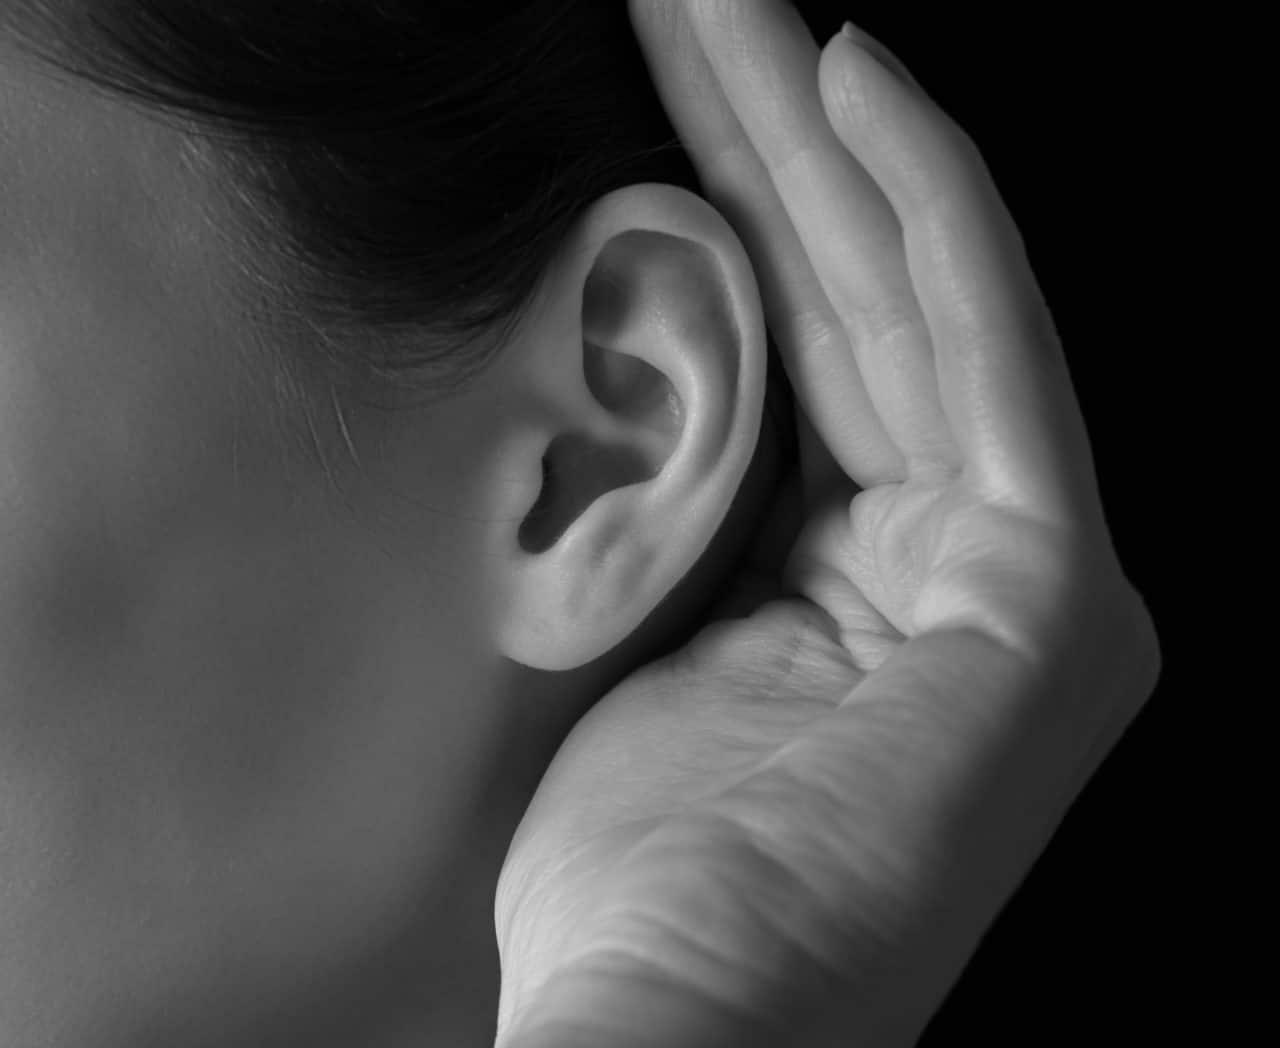 A person cupping a hand around their ear